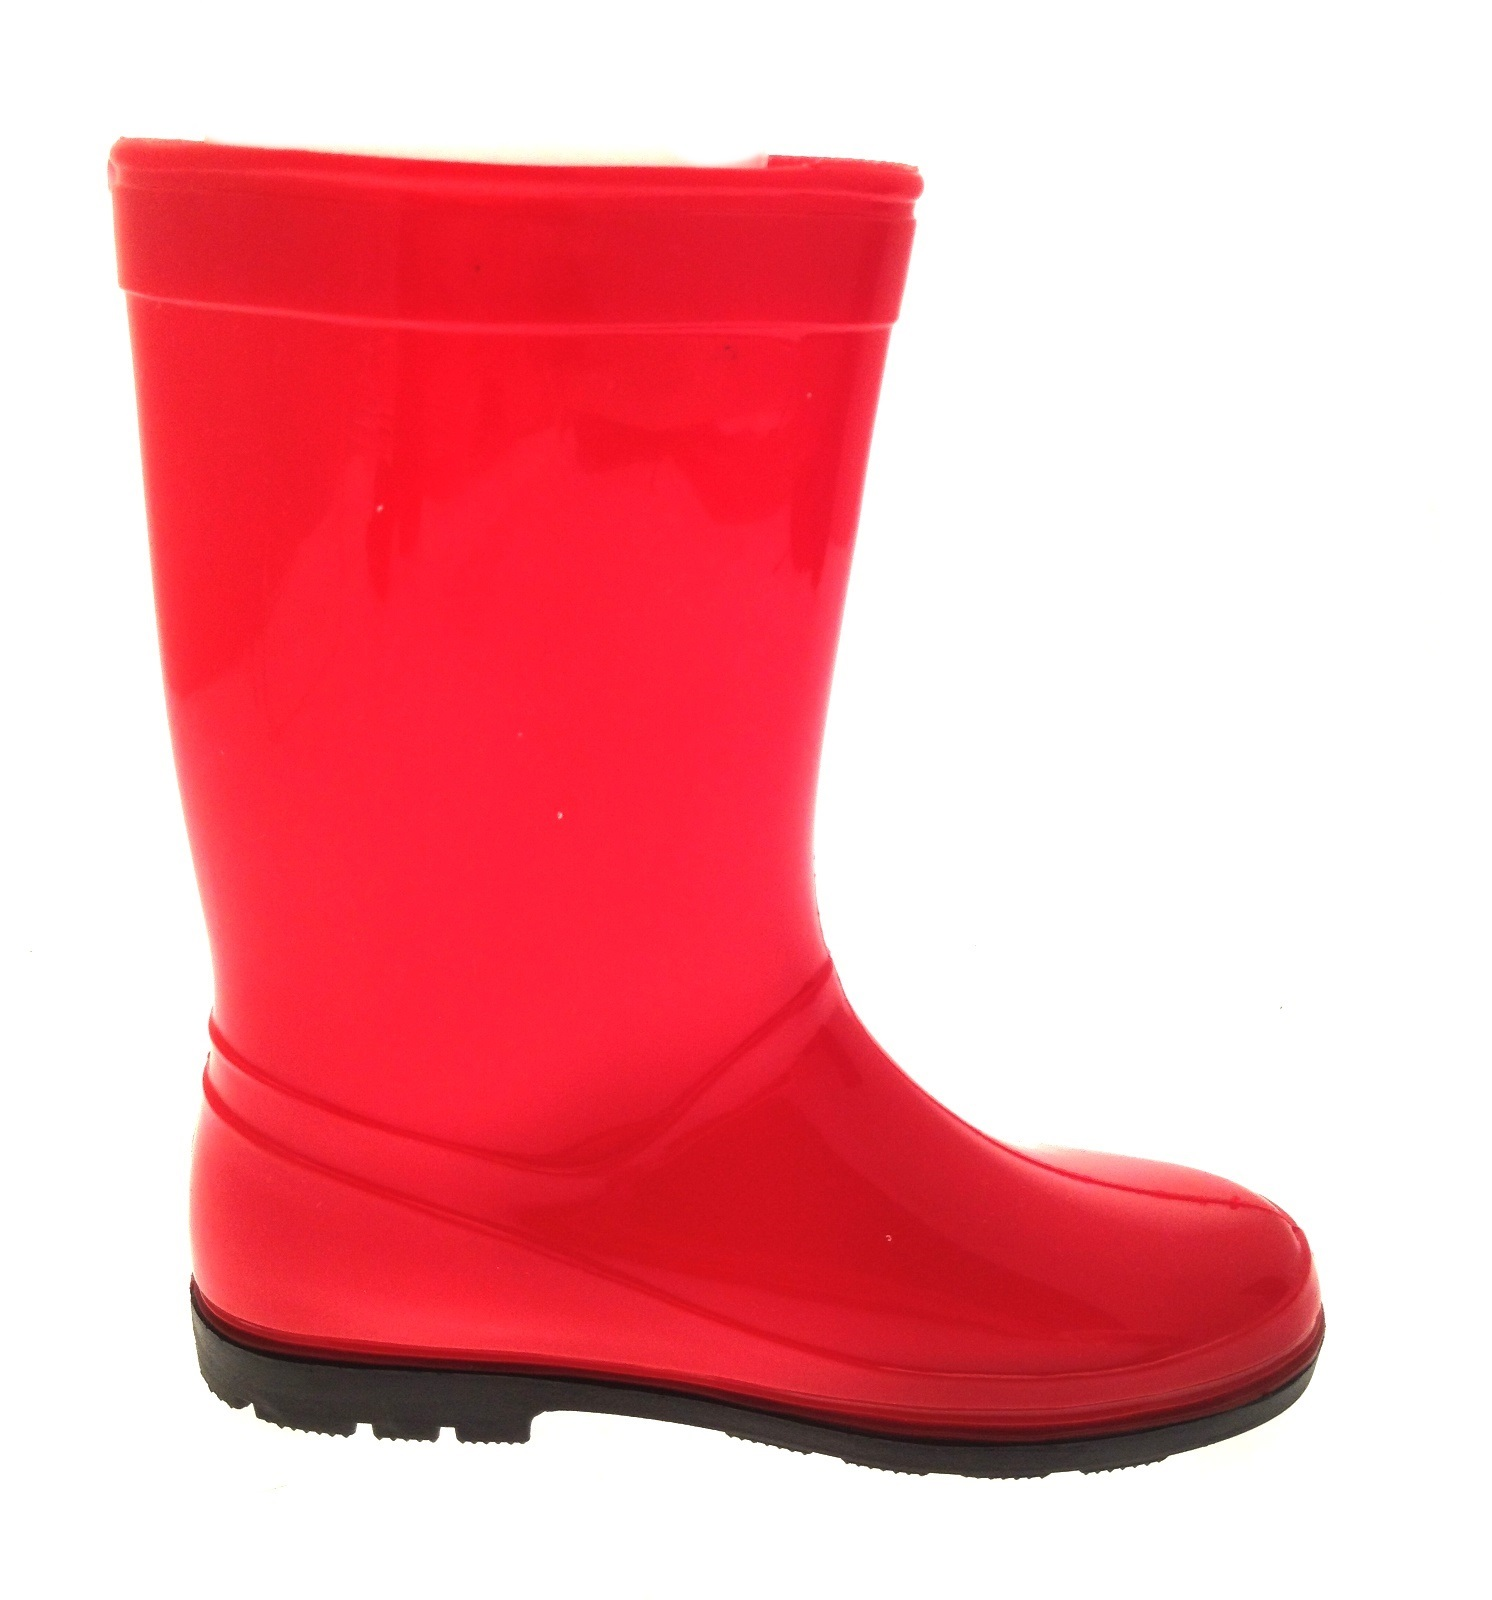 Childrens Snow Boots Size | Santa Barbara Institute for ...